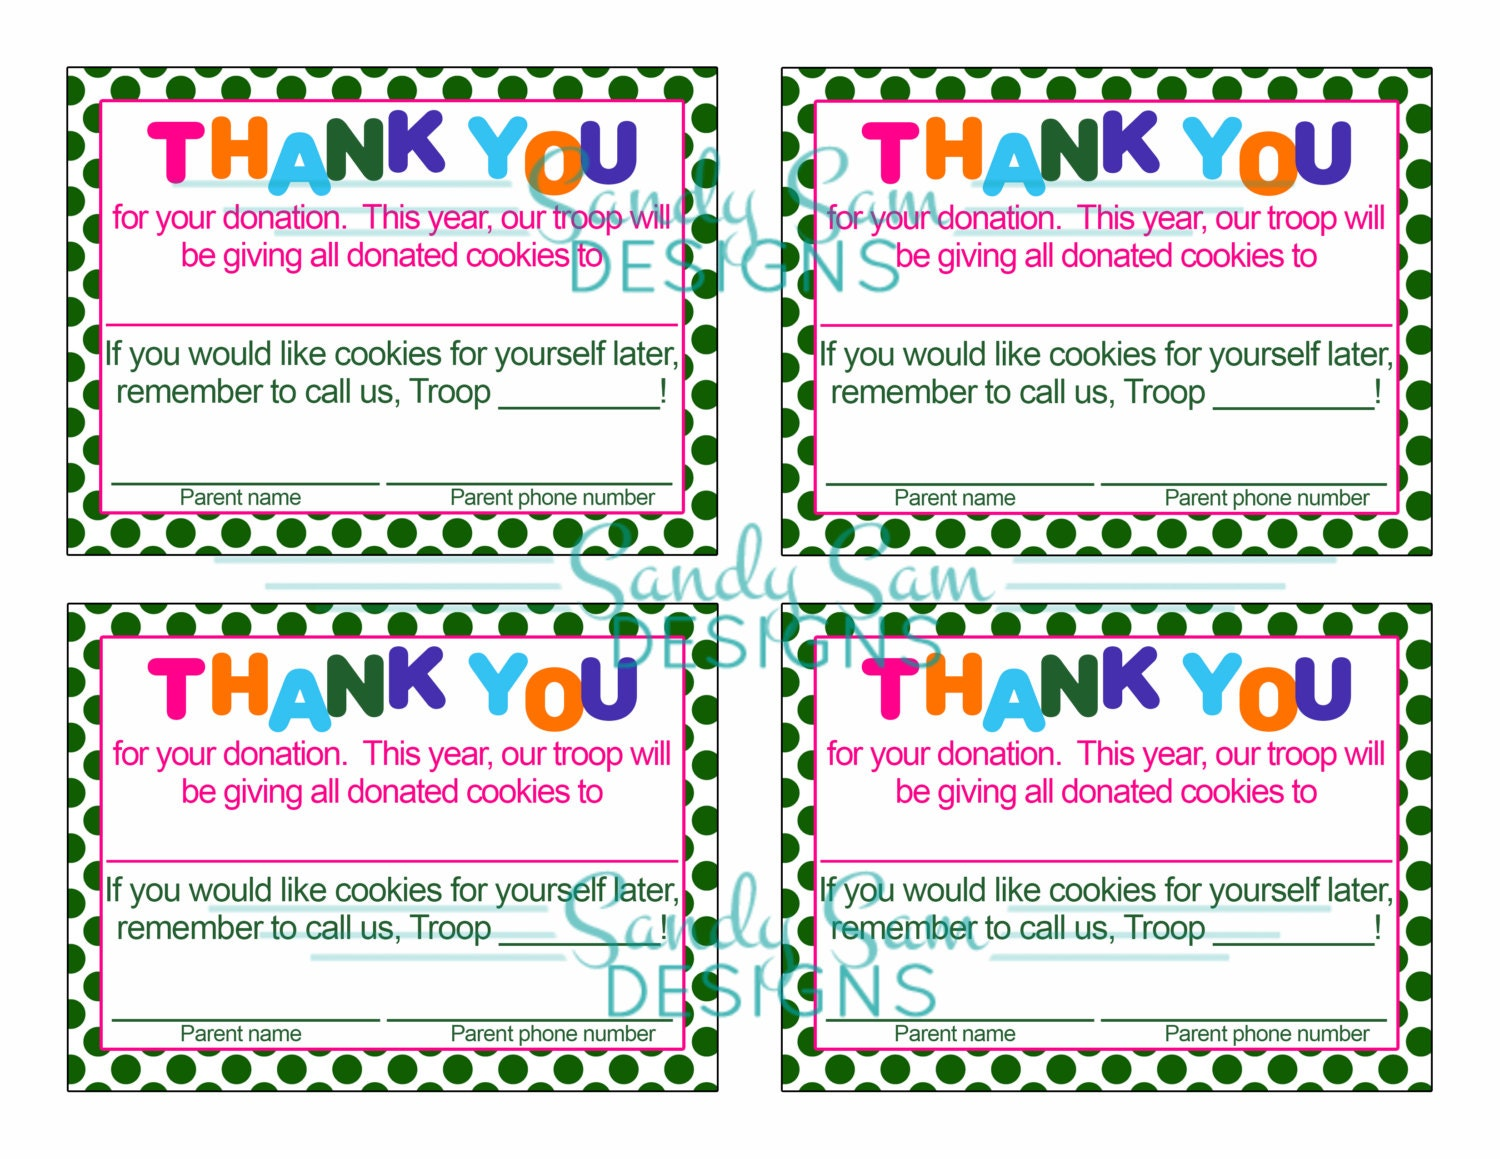 girl scout cookies thank you cards download foto gambar